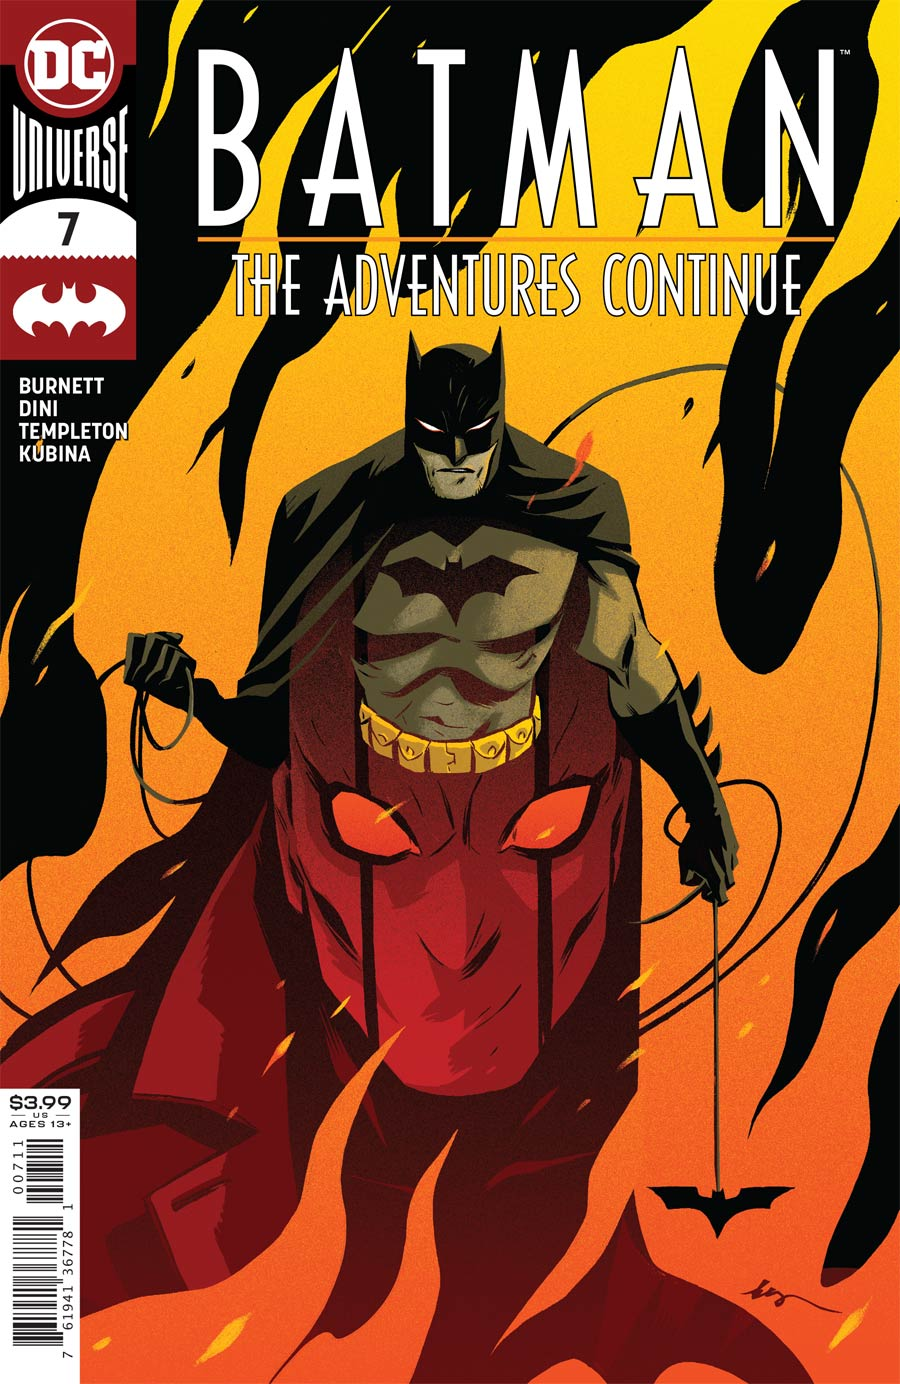 Batman The Adventures Continue #7 Cover A Regular Becky Cloonan Cover